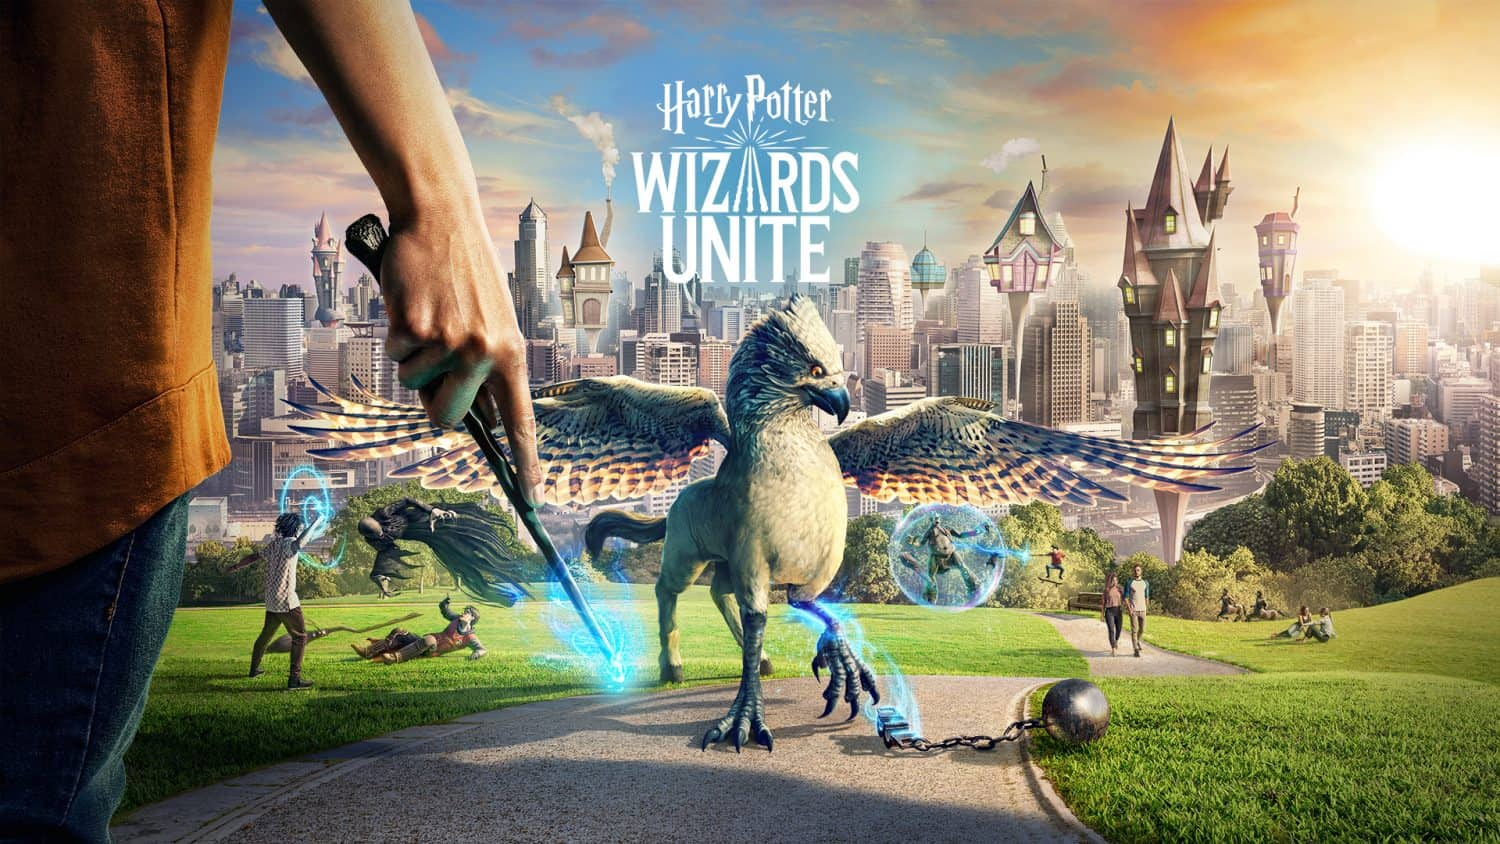 All You Need To Know About Harry Potter: Wizards Unite New Game